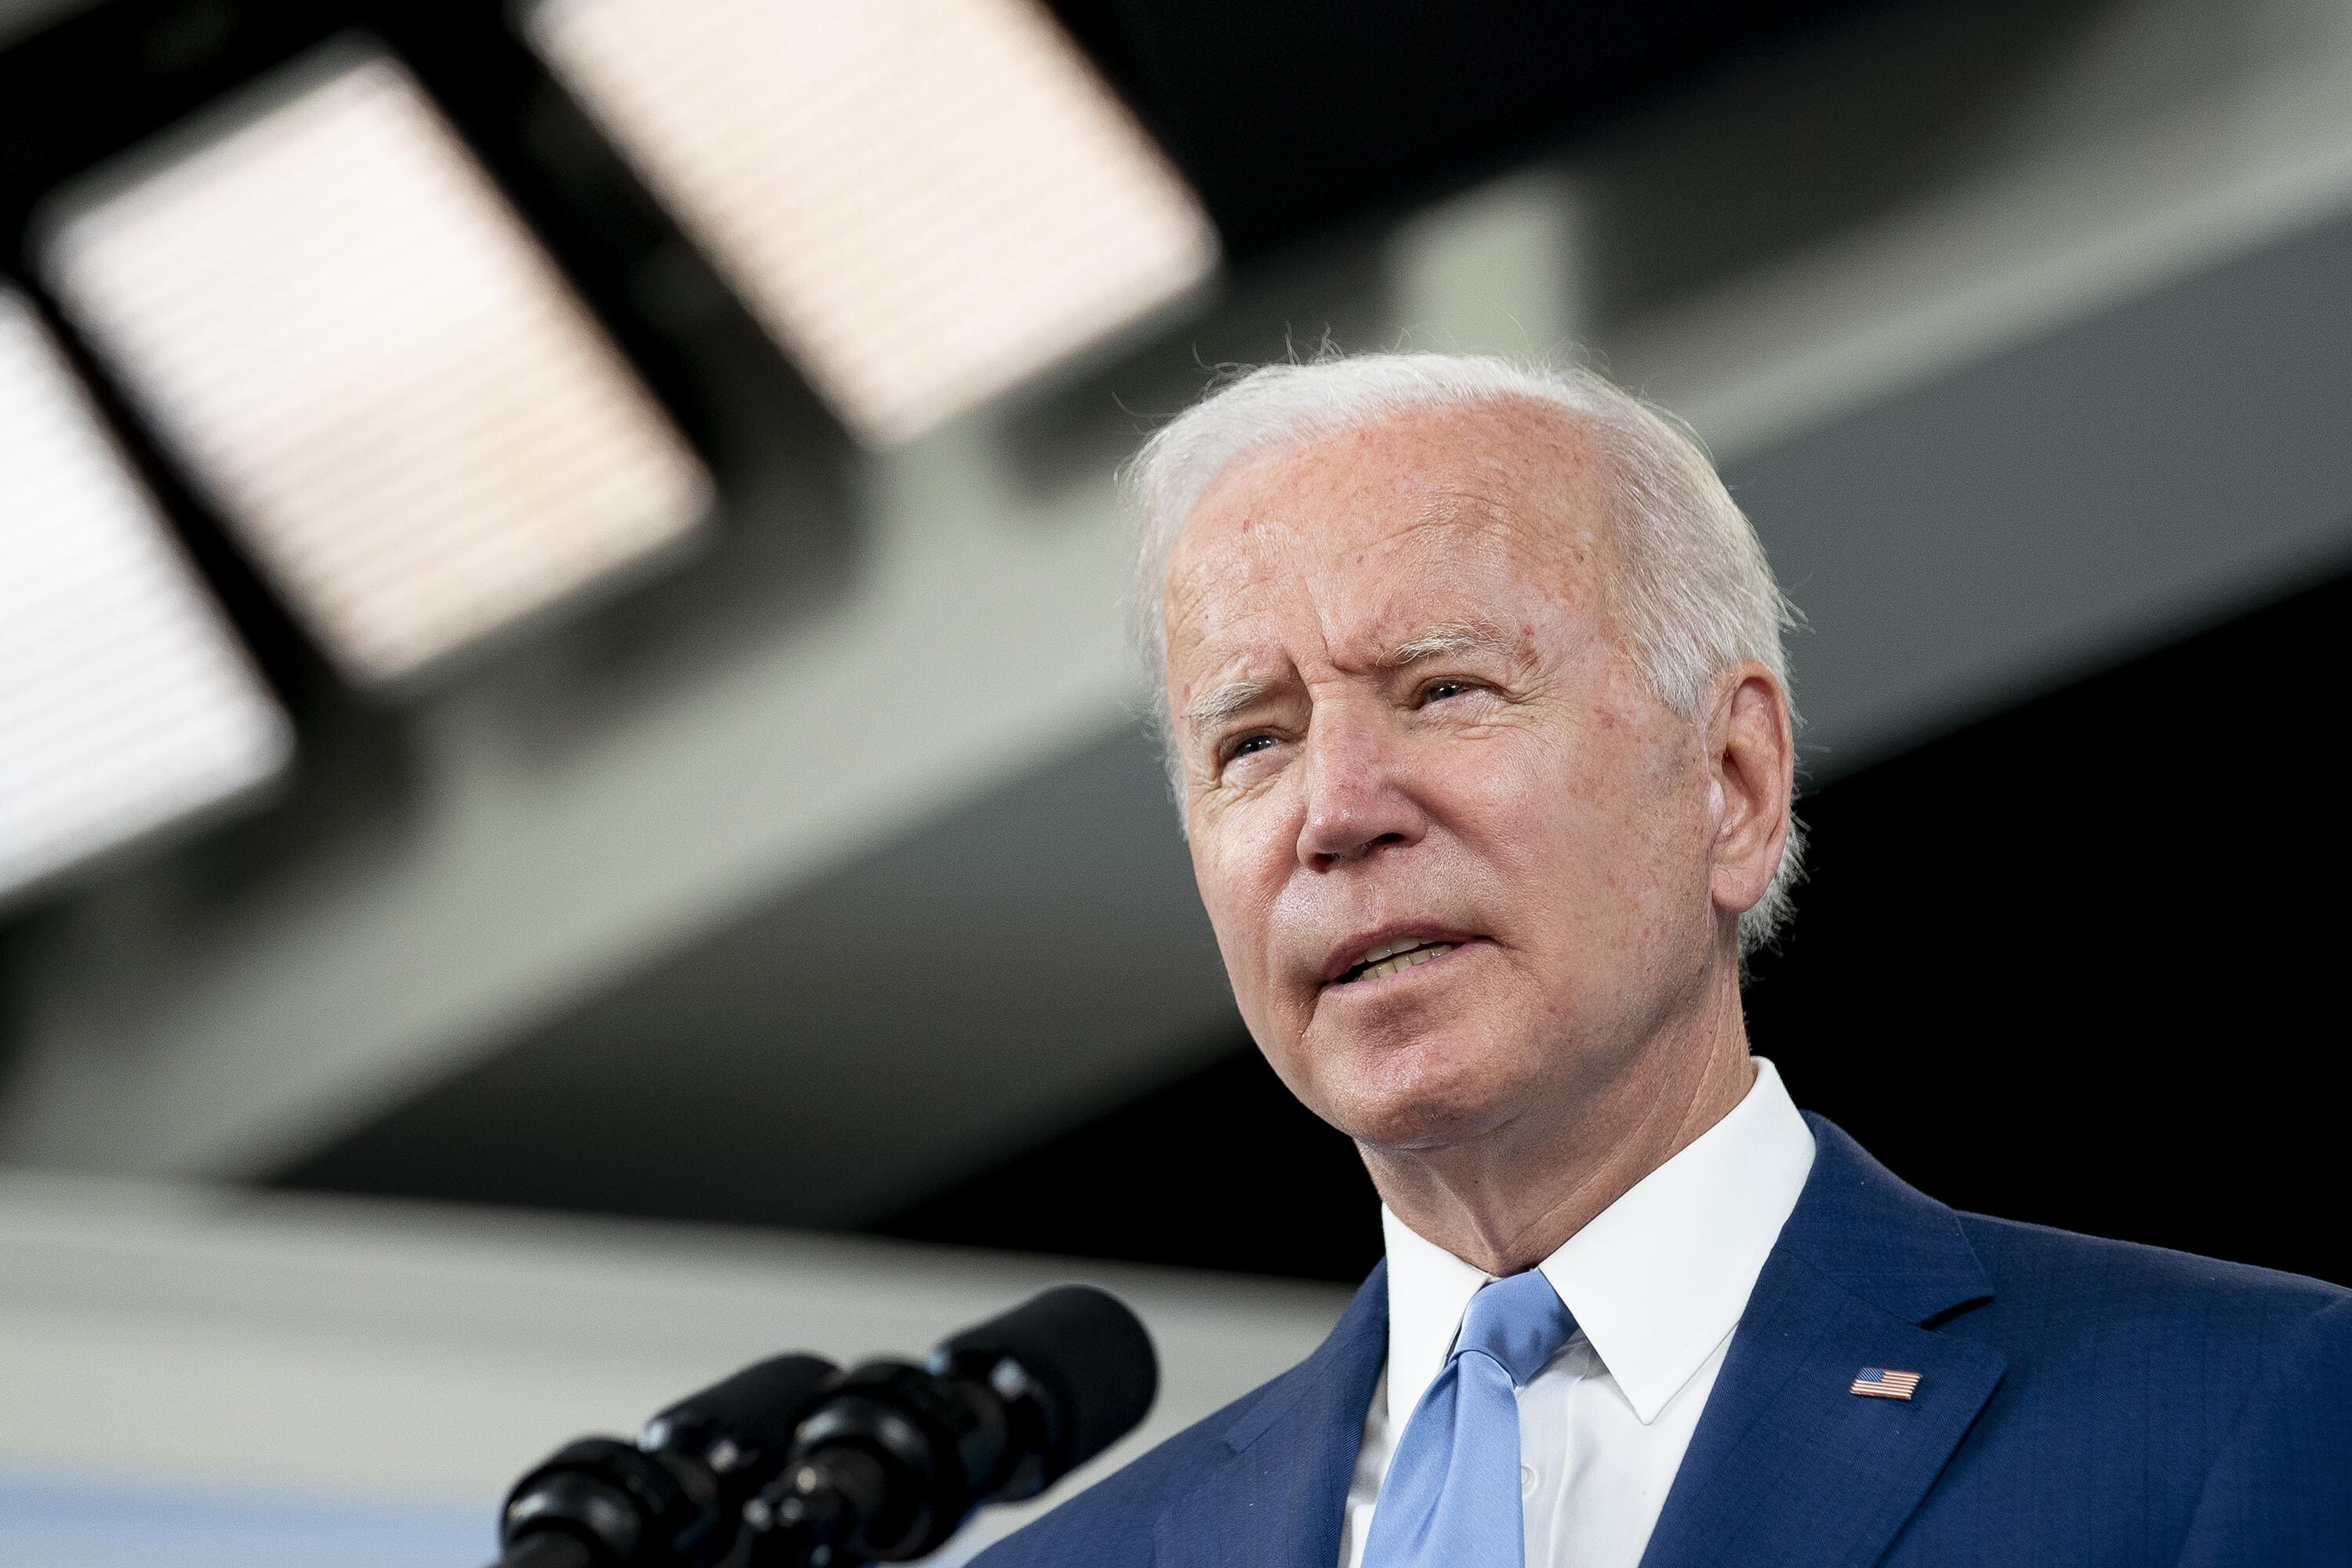 Afghan interpreter who helped rescue Biden in 2008 gets out of Afghanistan